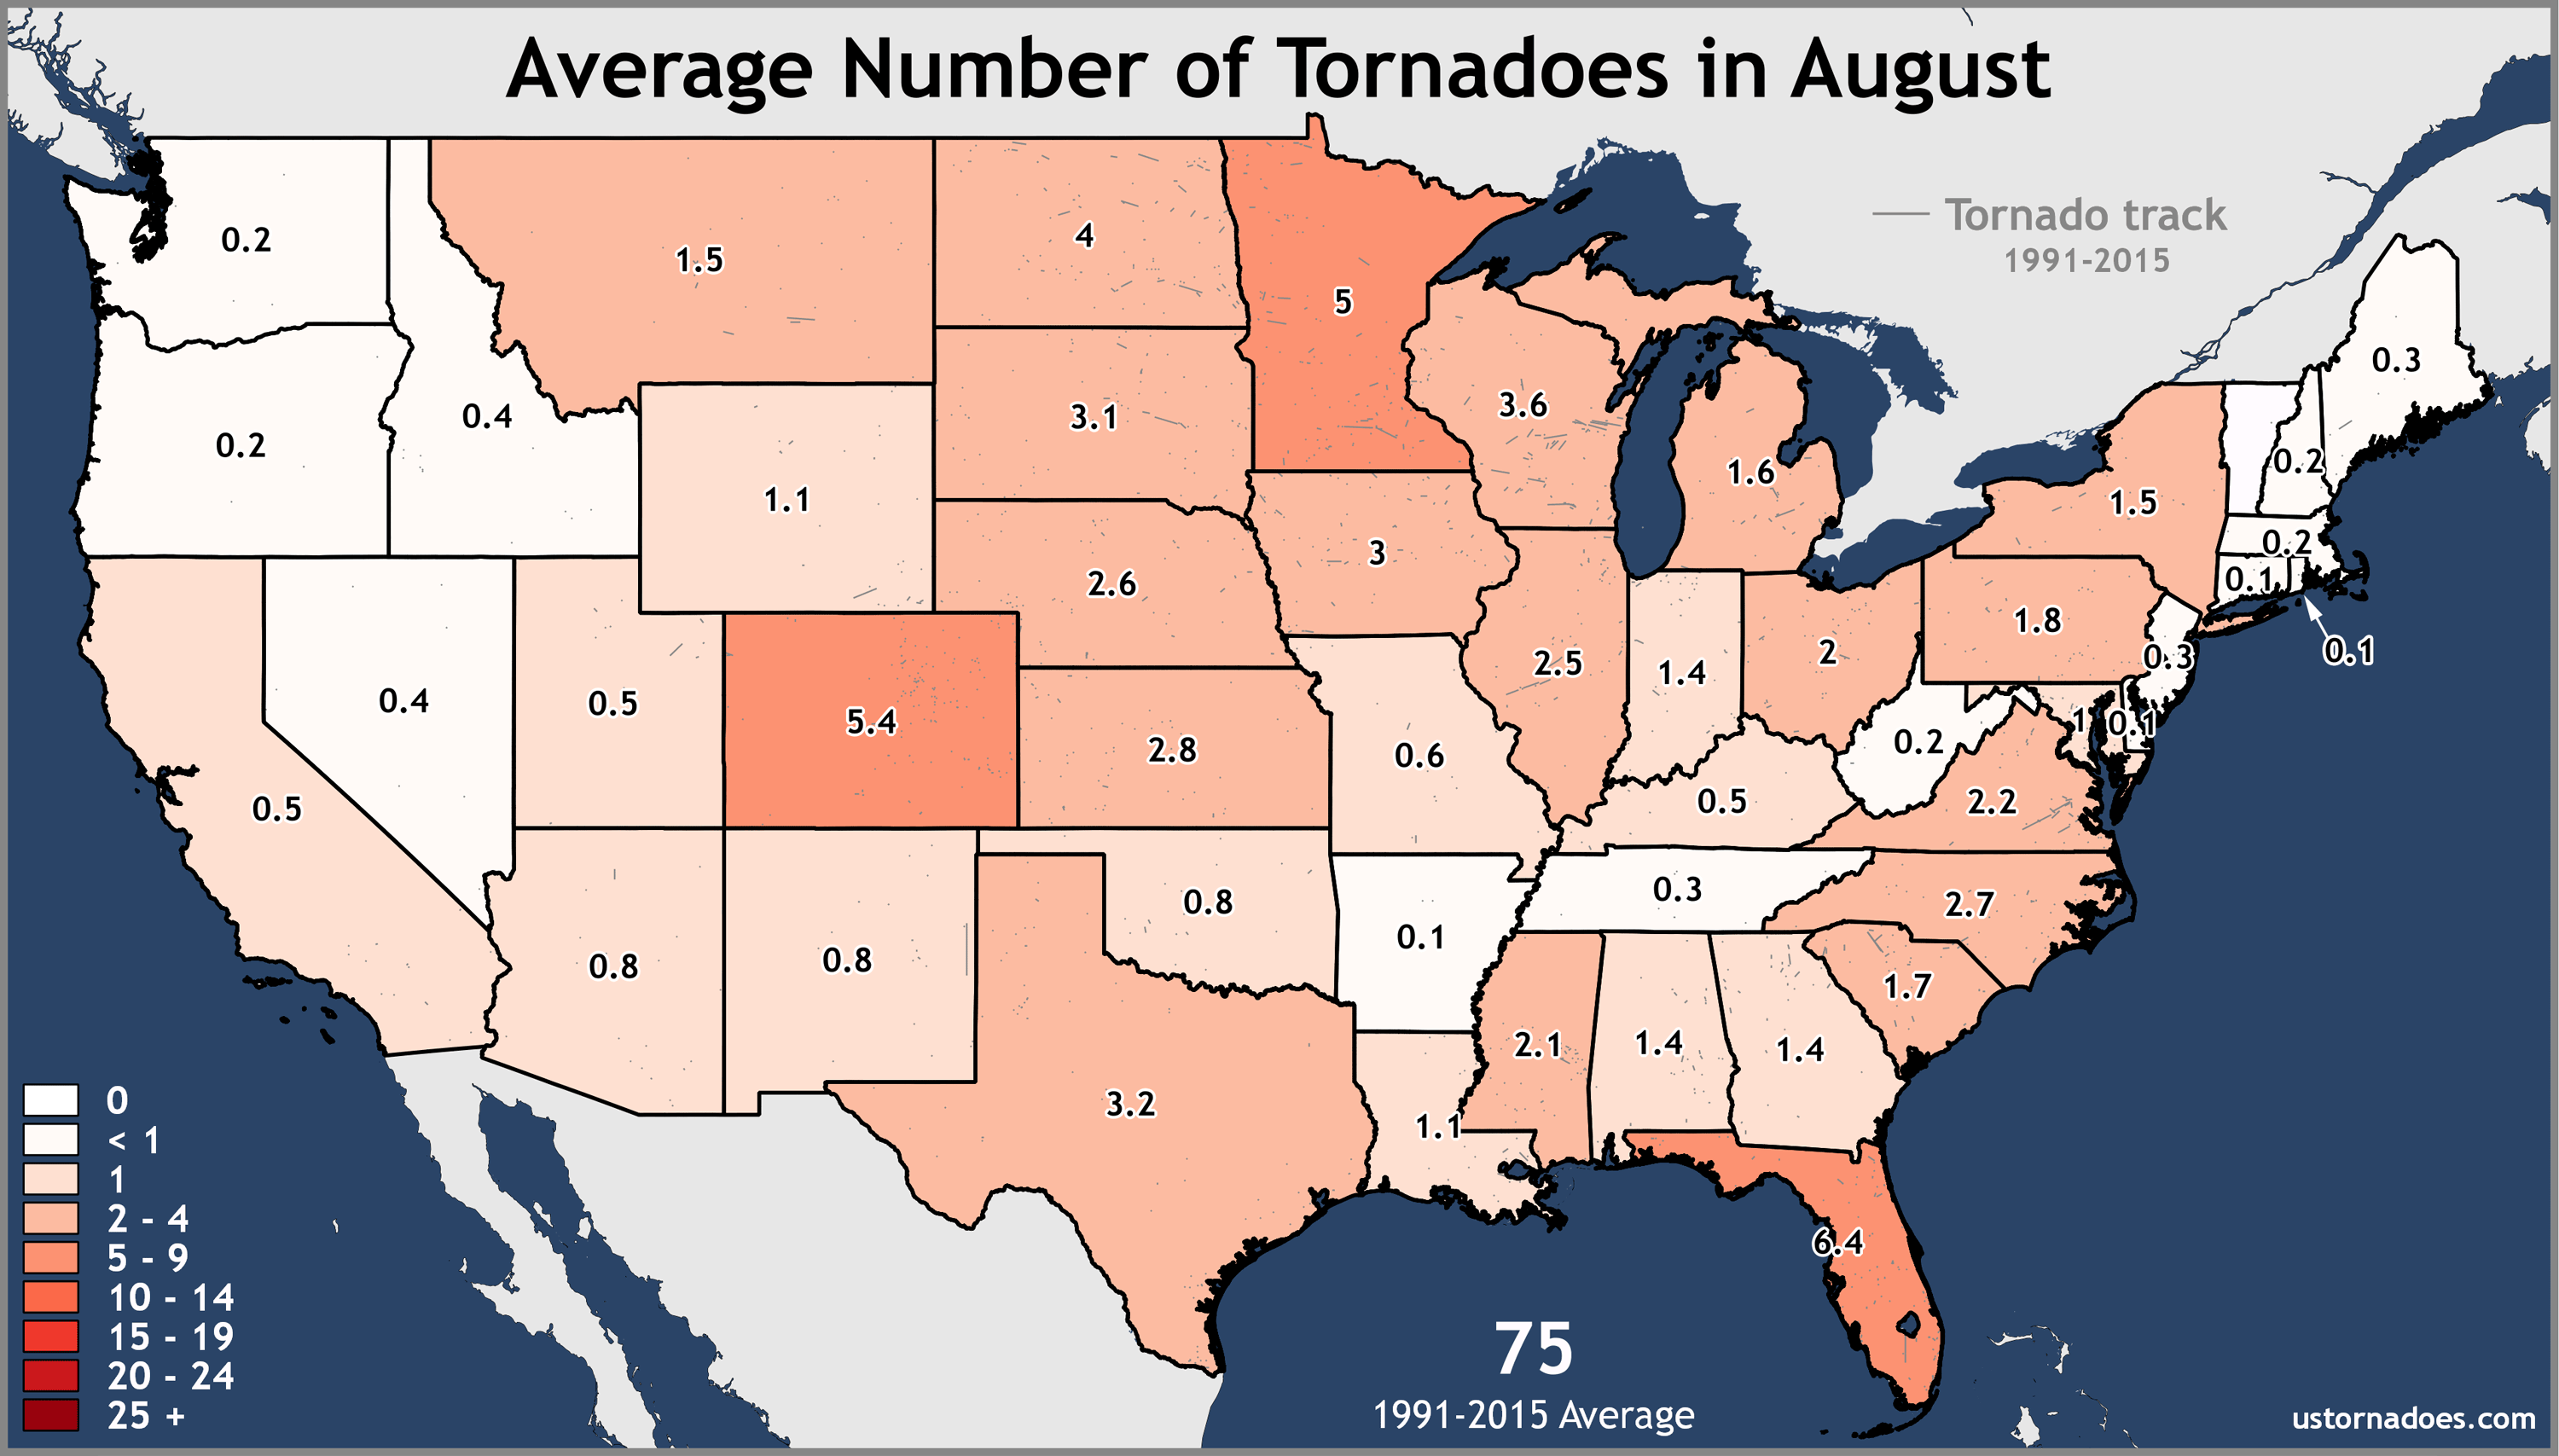 Average Number of Tornadoes in August